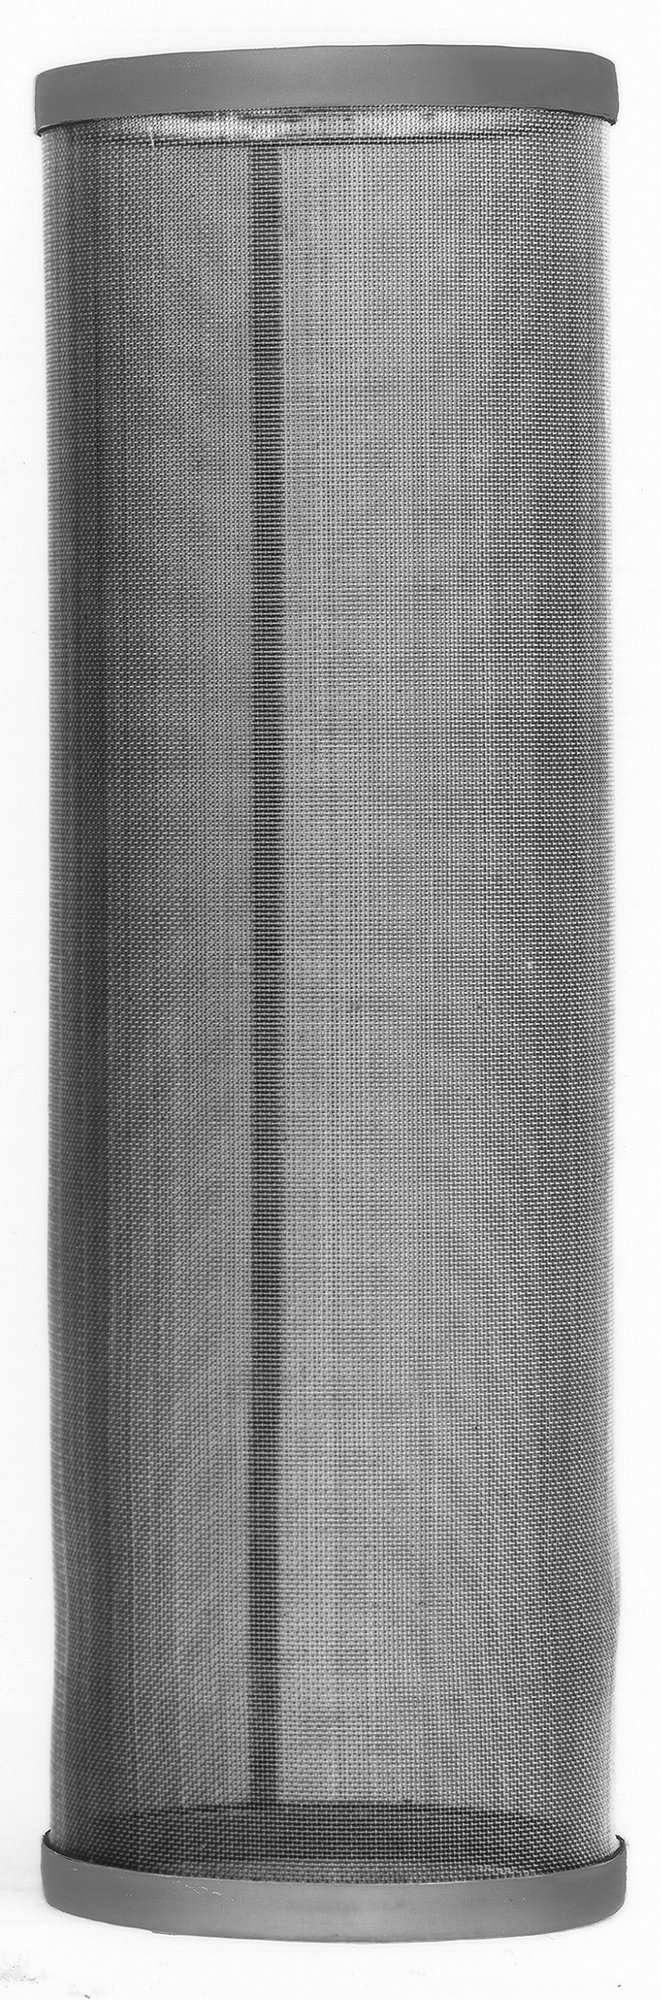 PT Coupling Petroleum Handling Series 30STSC-80 Stainless Steel Replacement T-Strainer Screen, 80 Mesh by PT Coupling